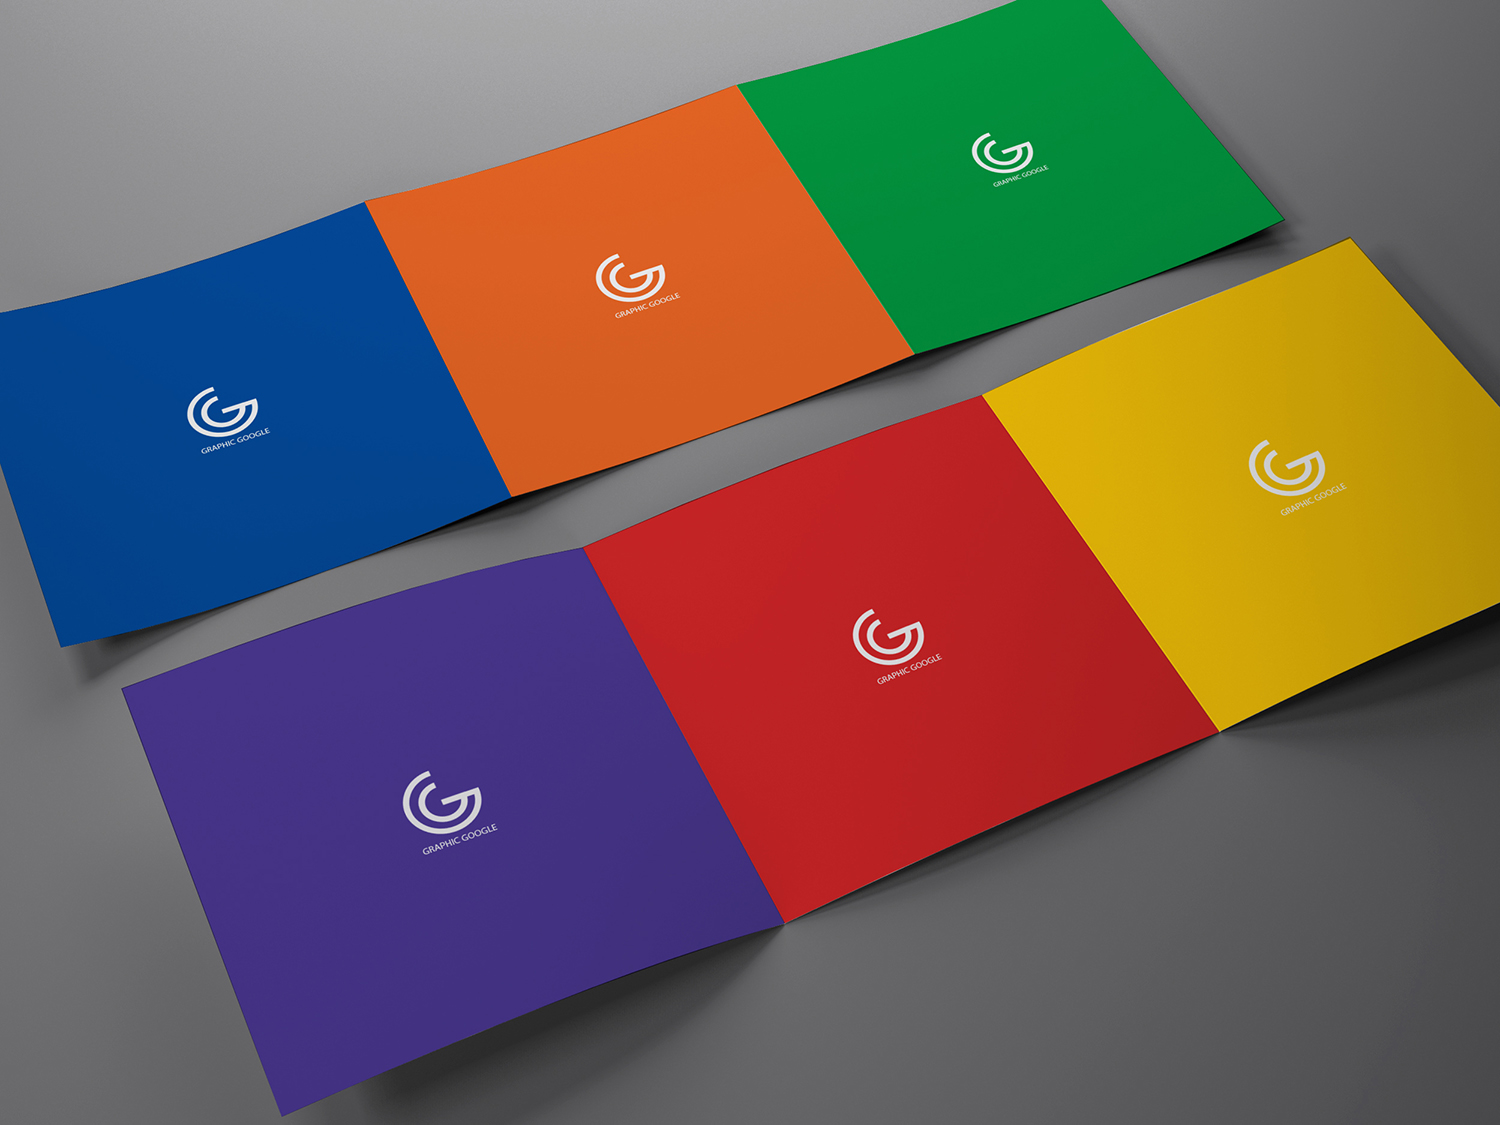 Free Tri-Fold Brochure Mockup - Graphic Google - Tasty Graphic ...